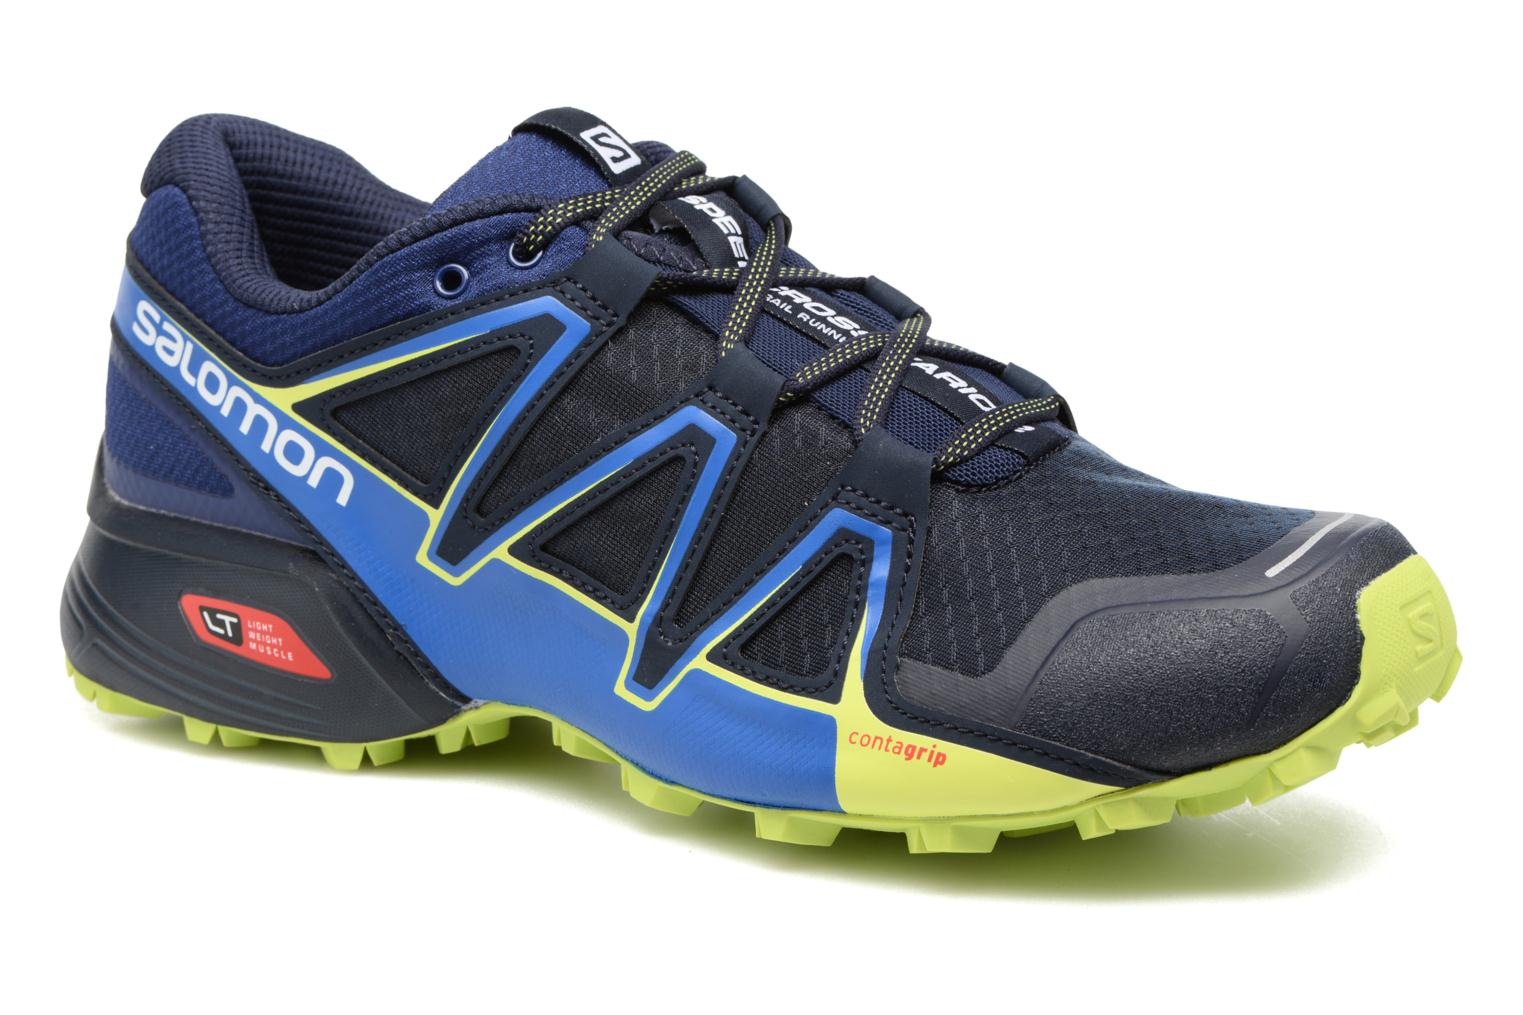 41 Salomon Offerte Shoes costo Running a basso Outlet Size awqIP1x1S